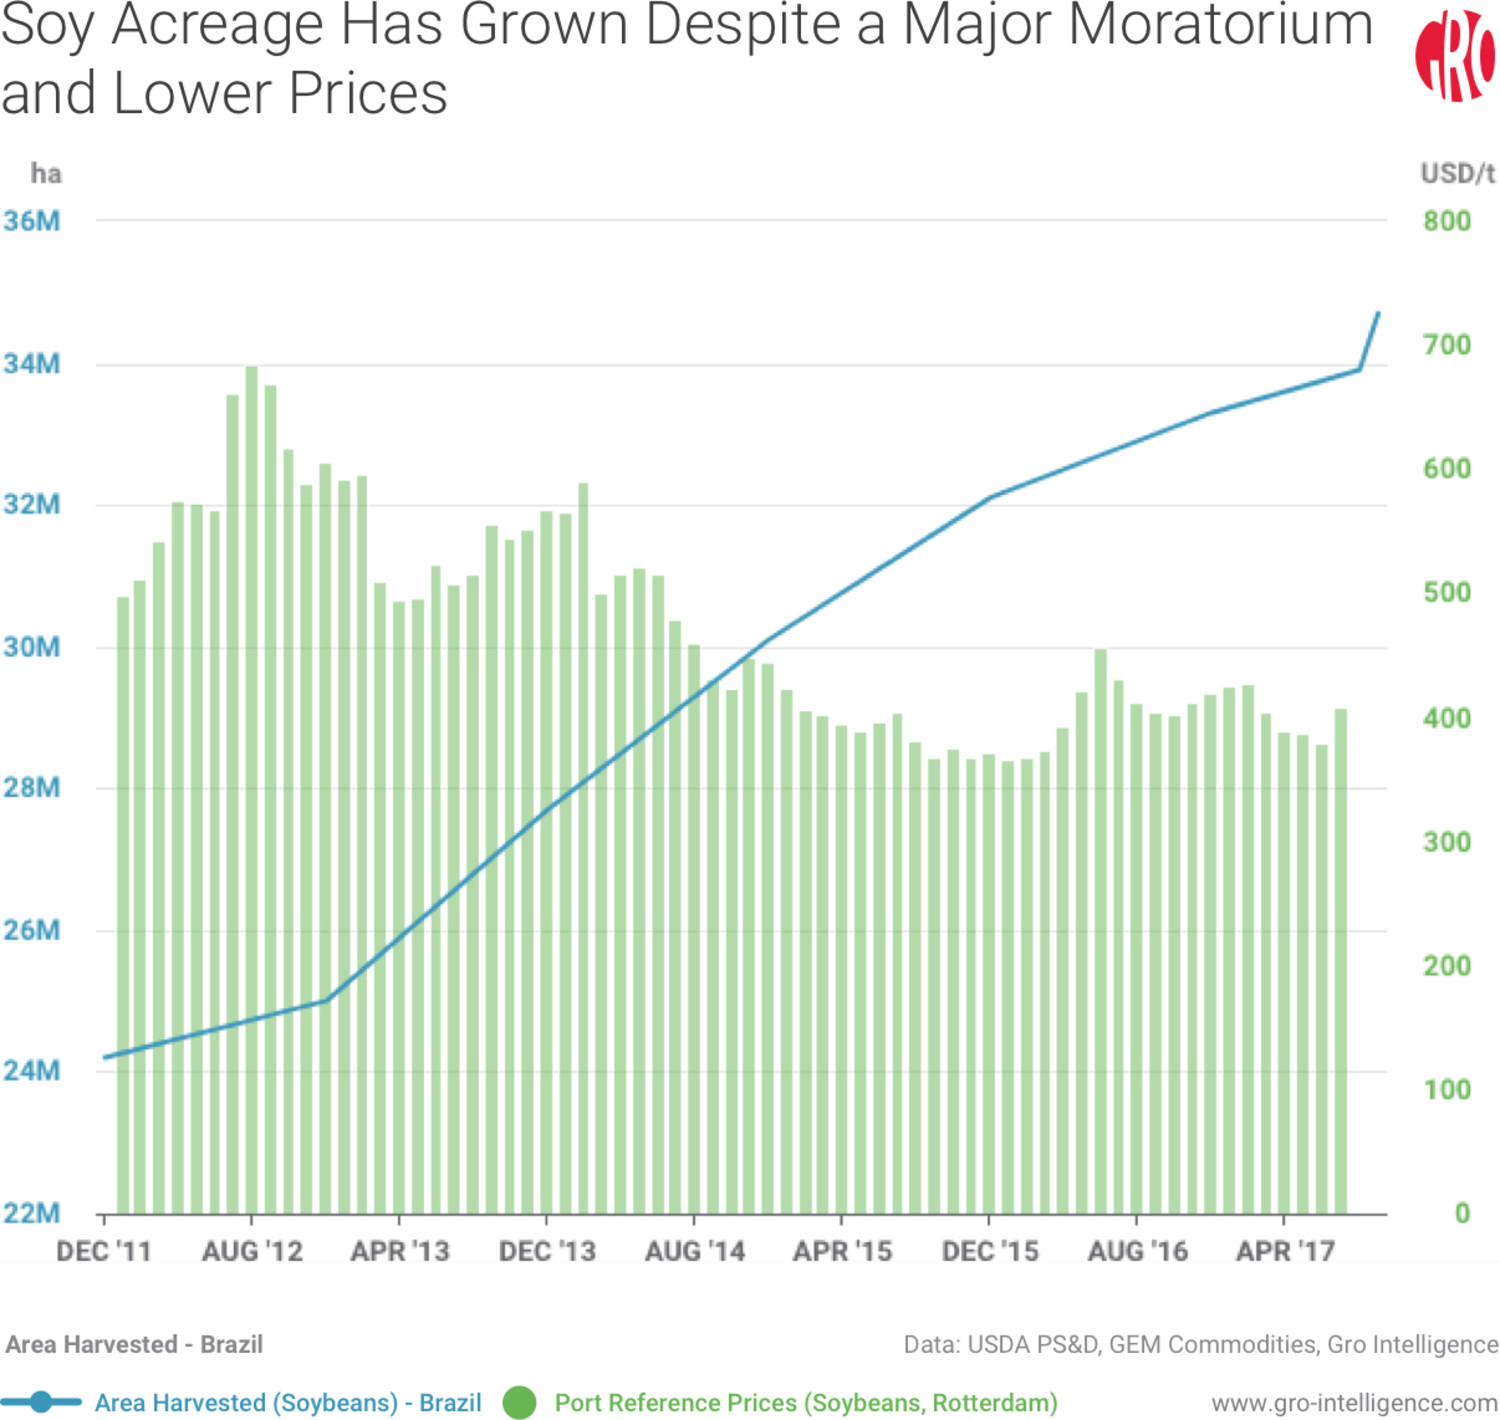 Soy Acreage Has Grown Despite a Major Moratorium and Lower Prices